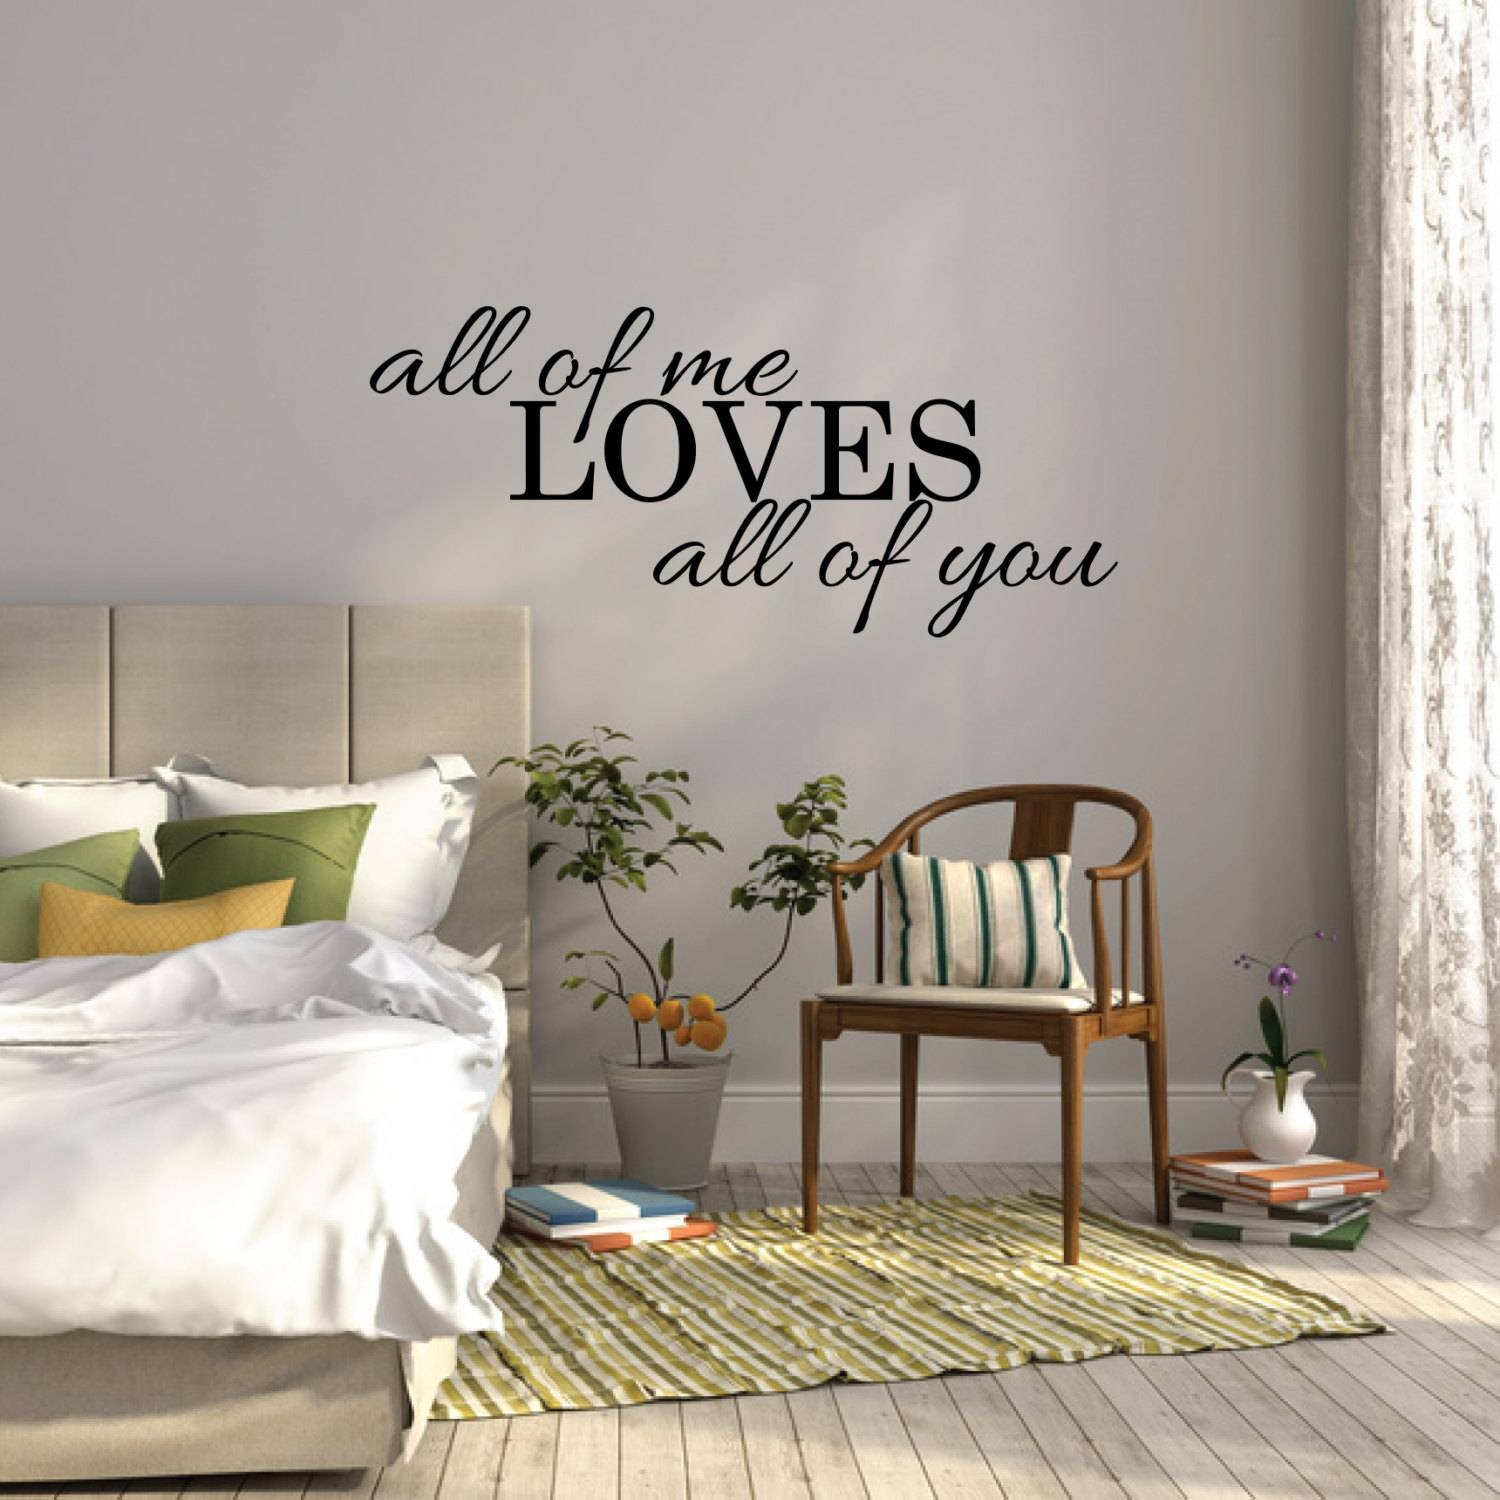 All Of Me Loves All Of You Wall Sticker Bedroom Wall Decal With Regard To 2018 Over The Bed Wall Art (View 4 of 20)